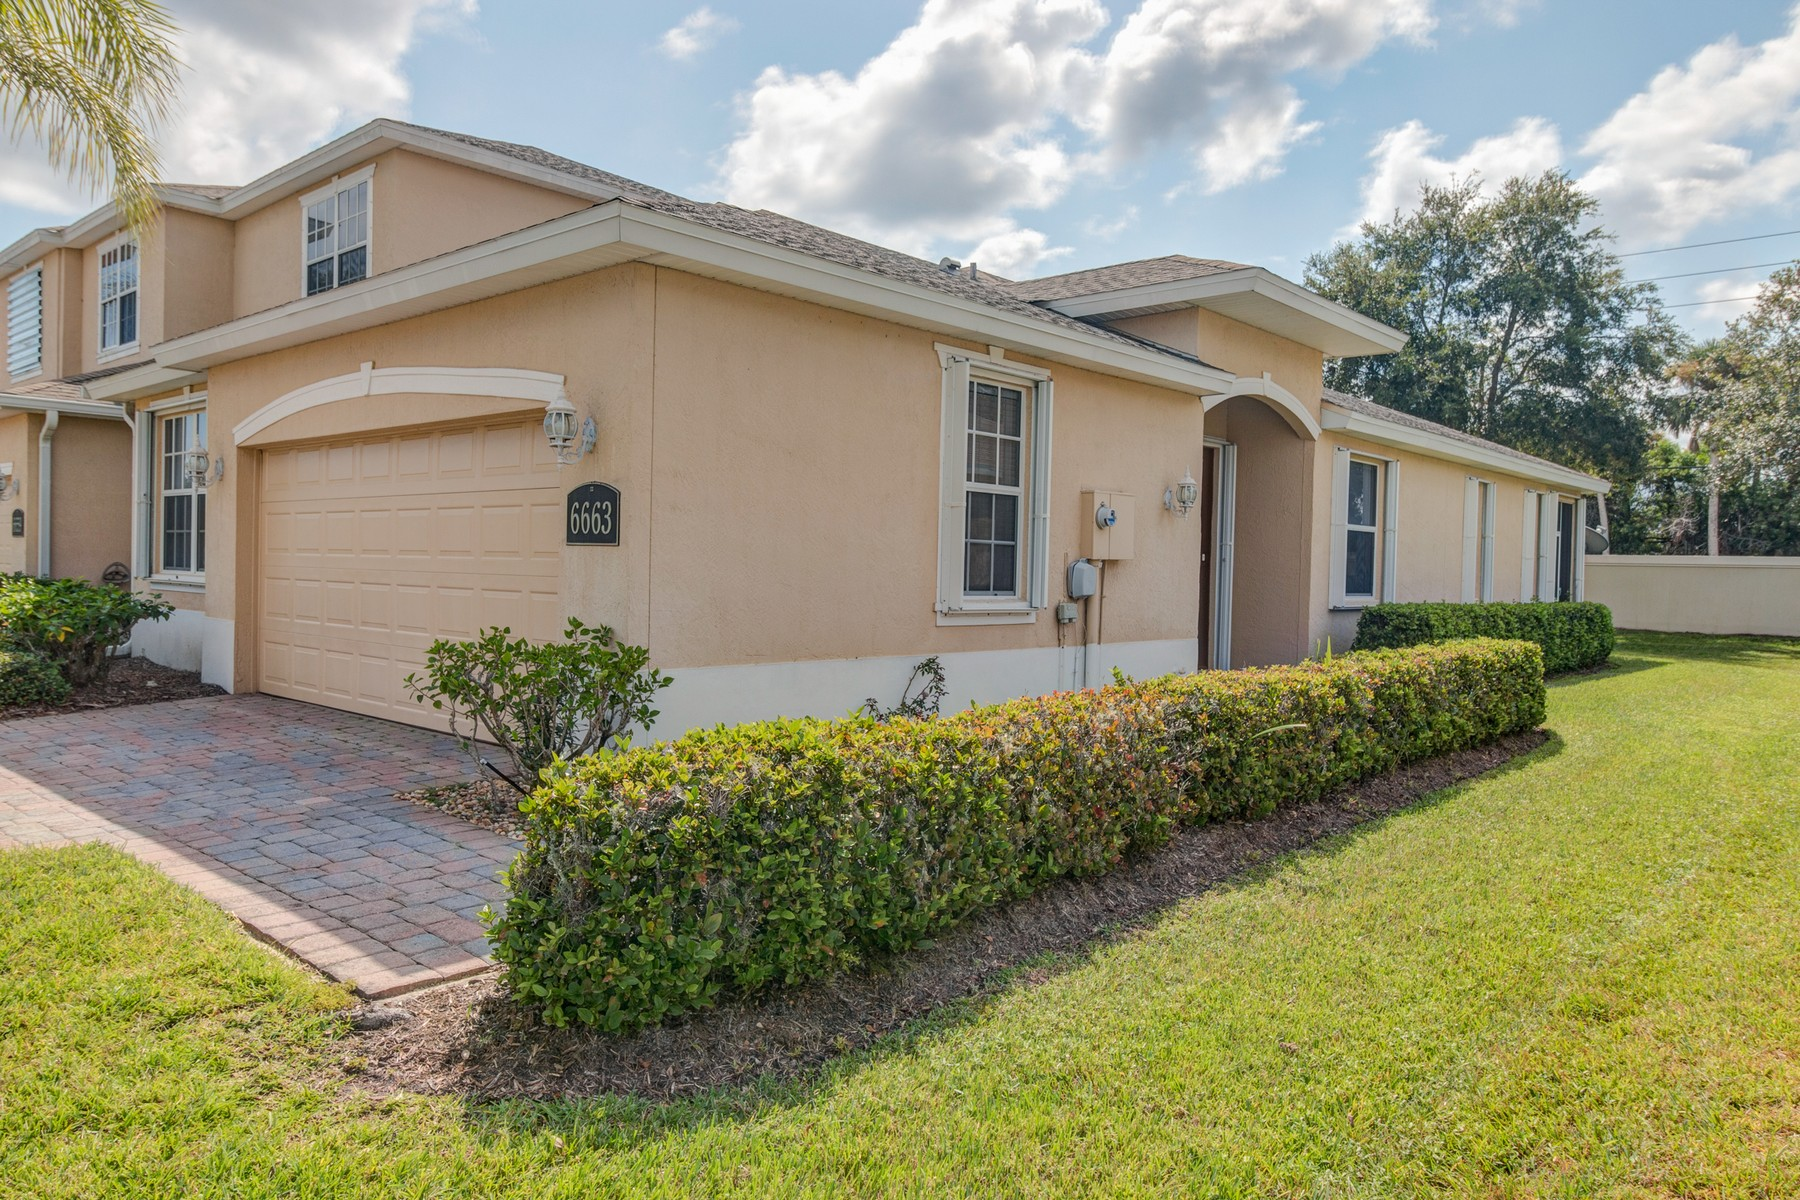 Single Family Homes for Sale at End Unit Villa 6663 Liberty Place Vero Beach, Florida 32966 United States